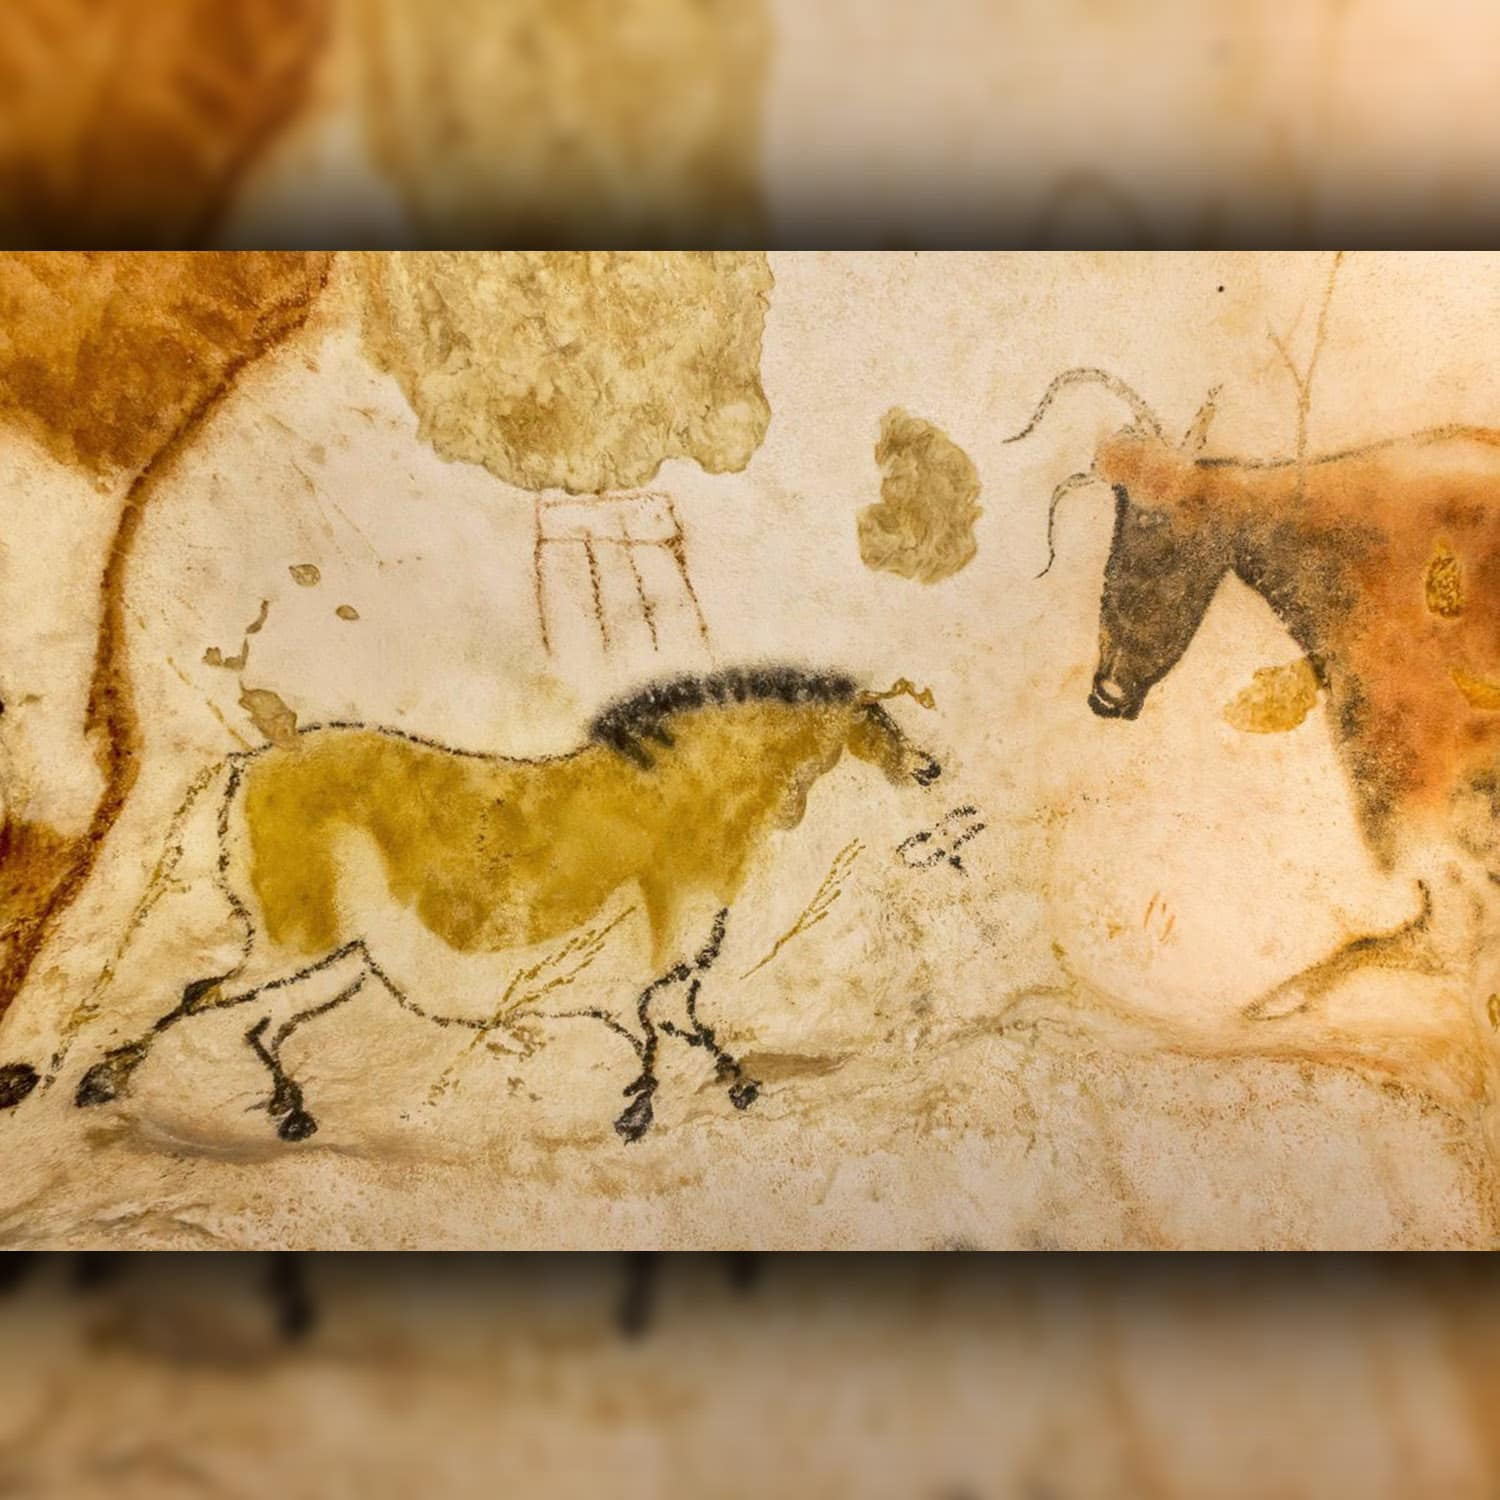 The Lascaux cave in France has a painting of a 17,000 year old yellow horse.